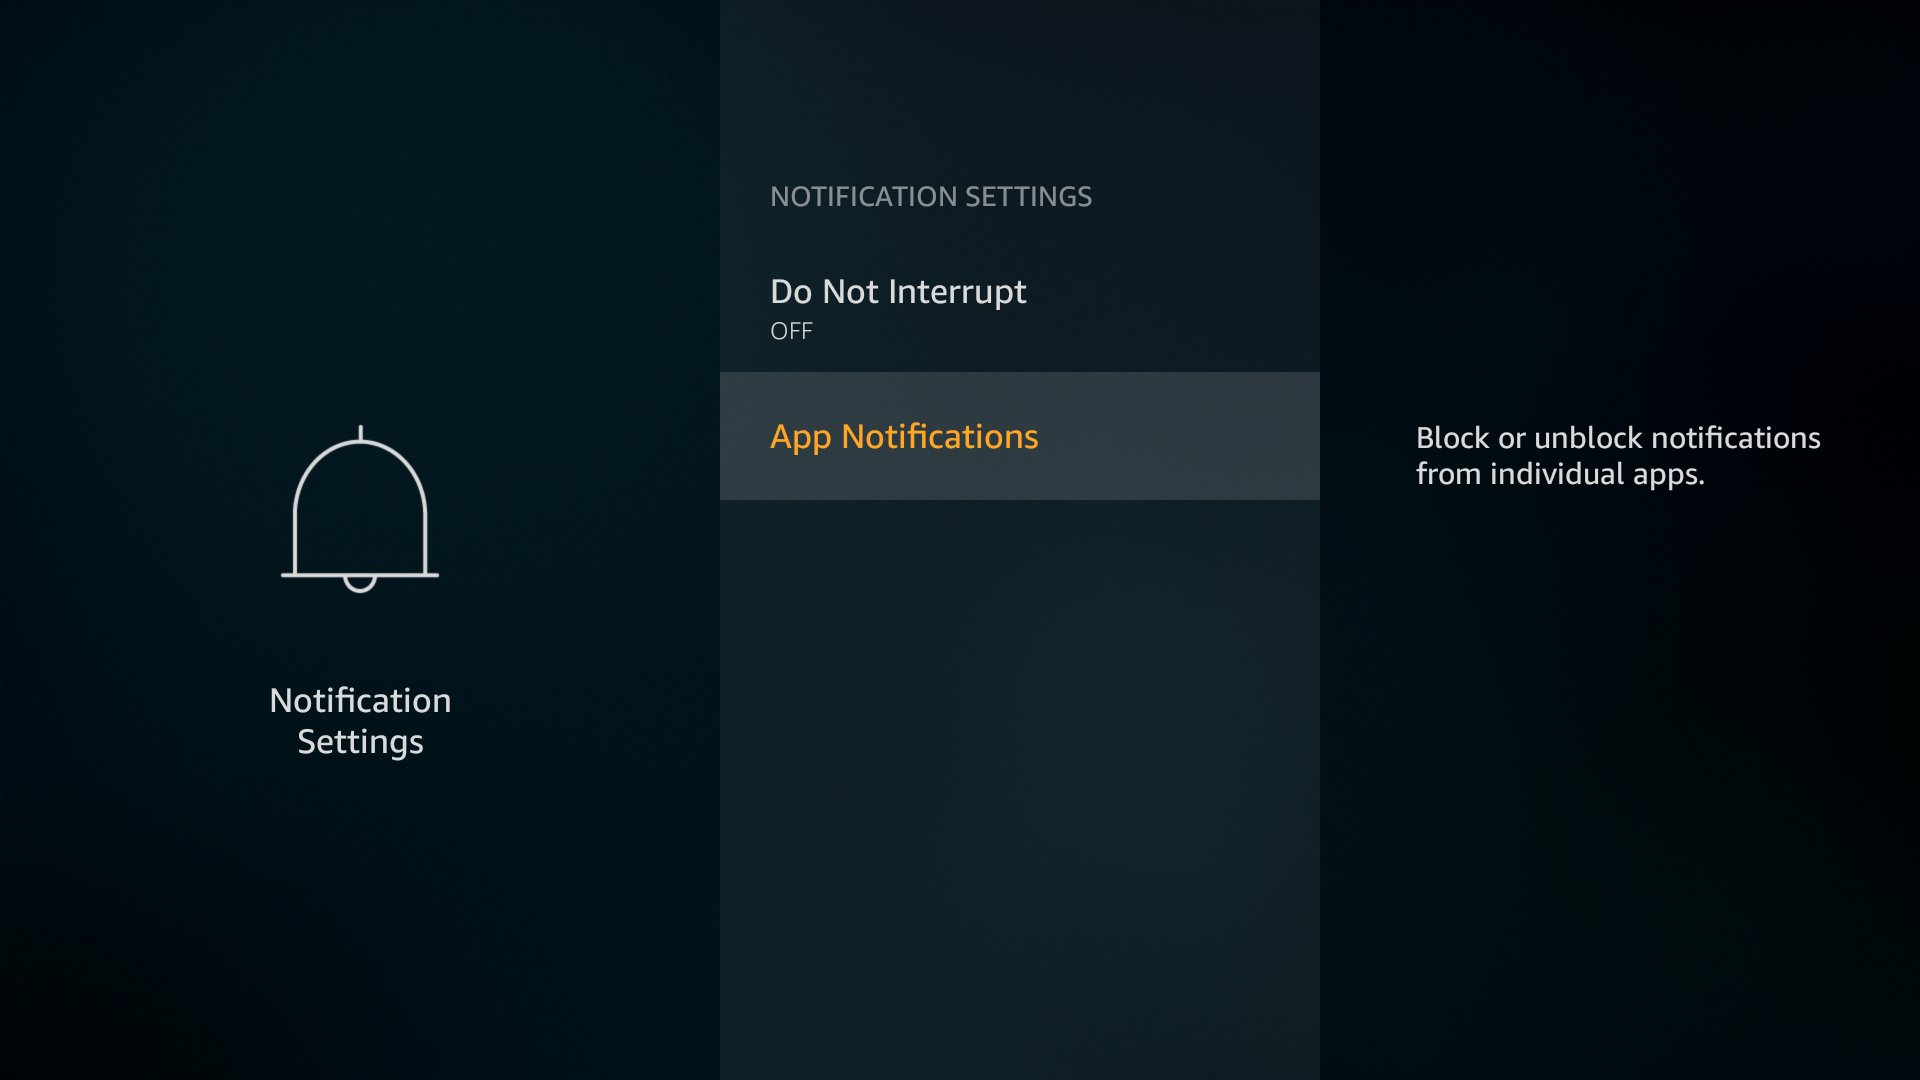 you will still see standard notifications in the notification center and see the bell icon on